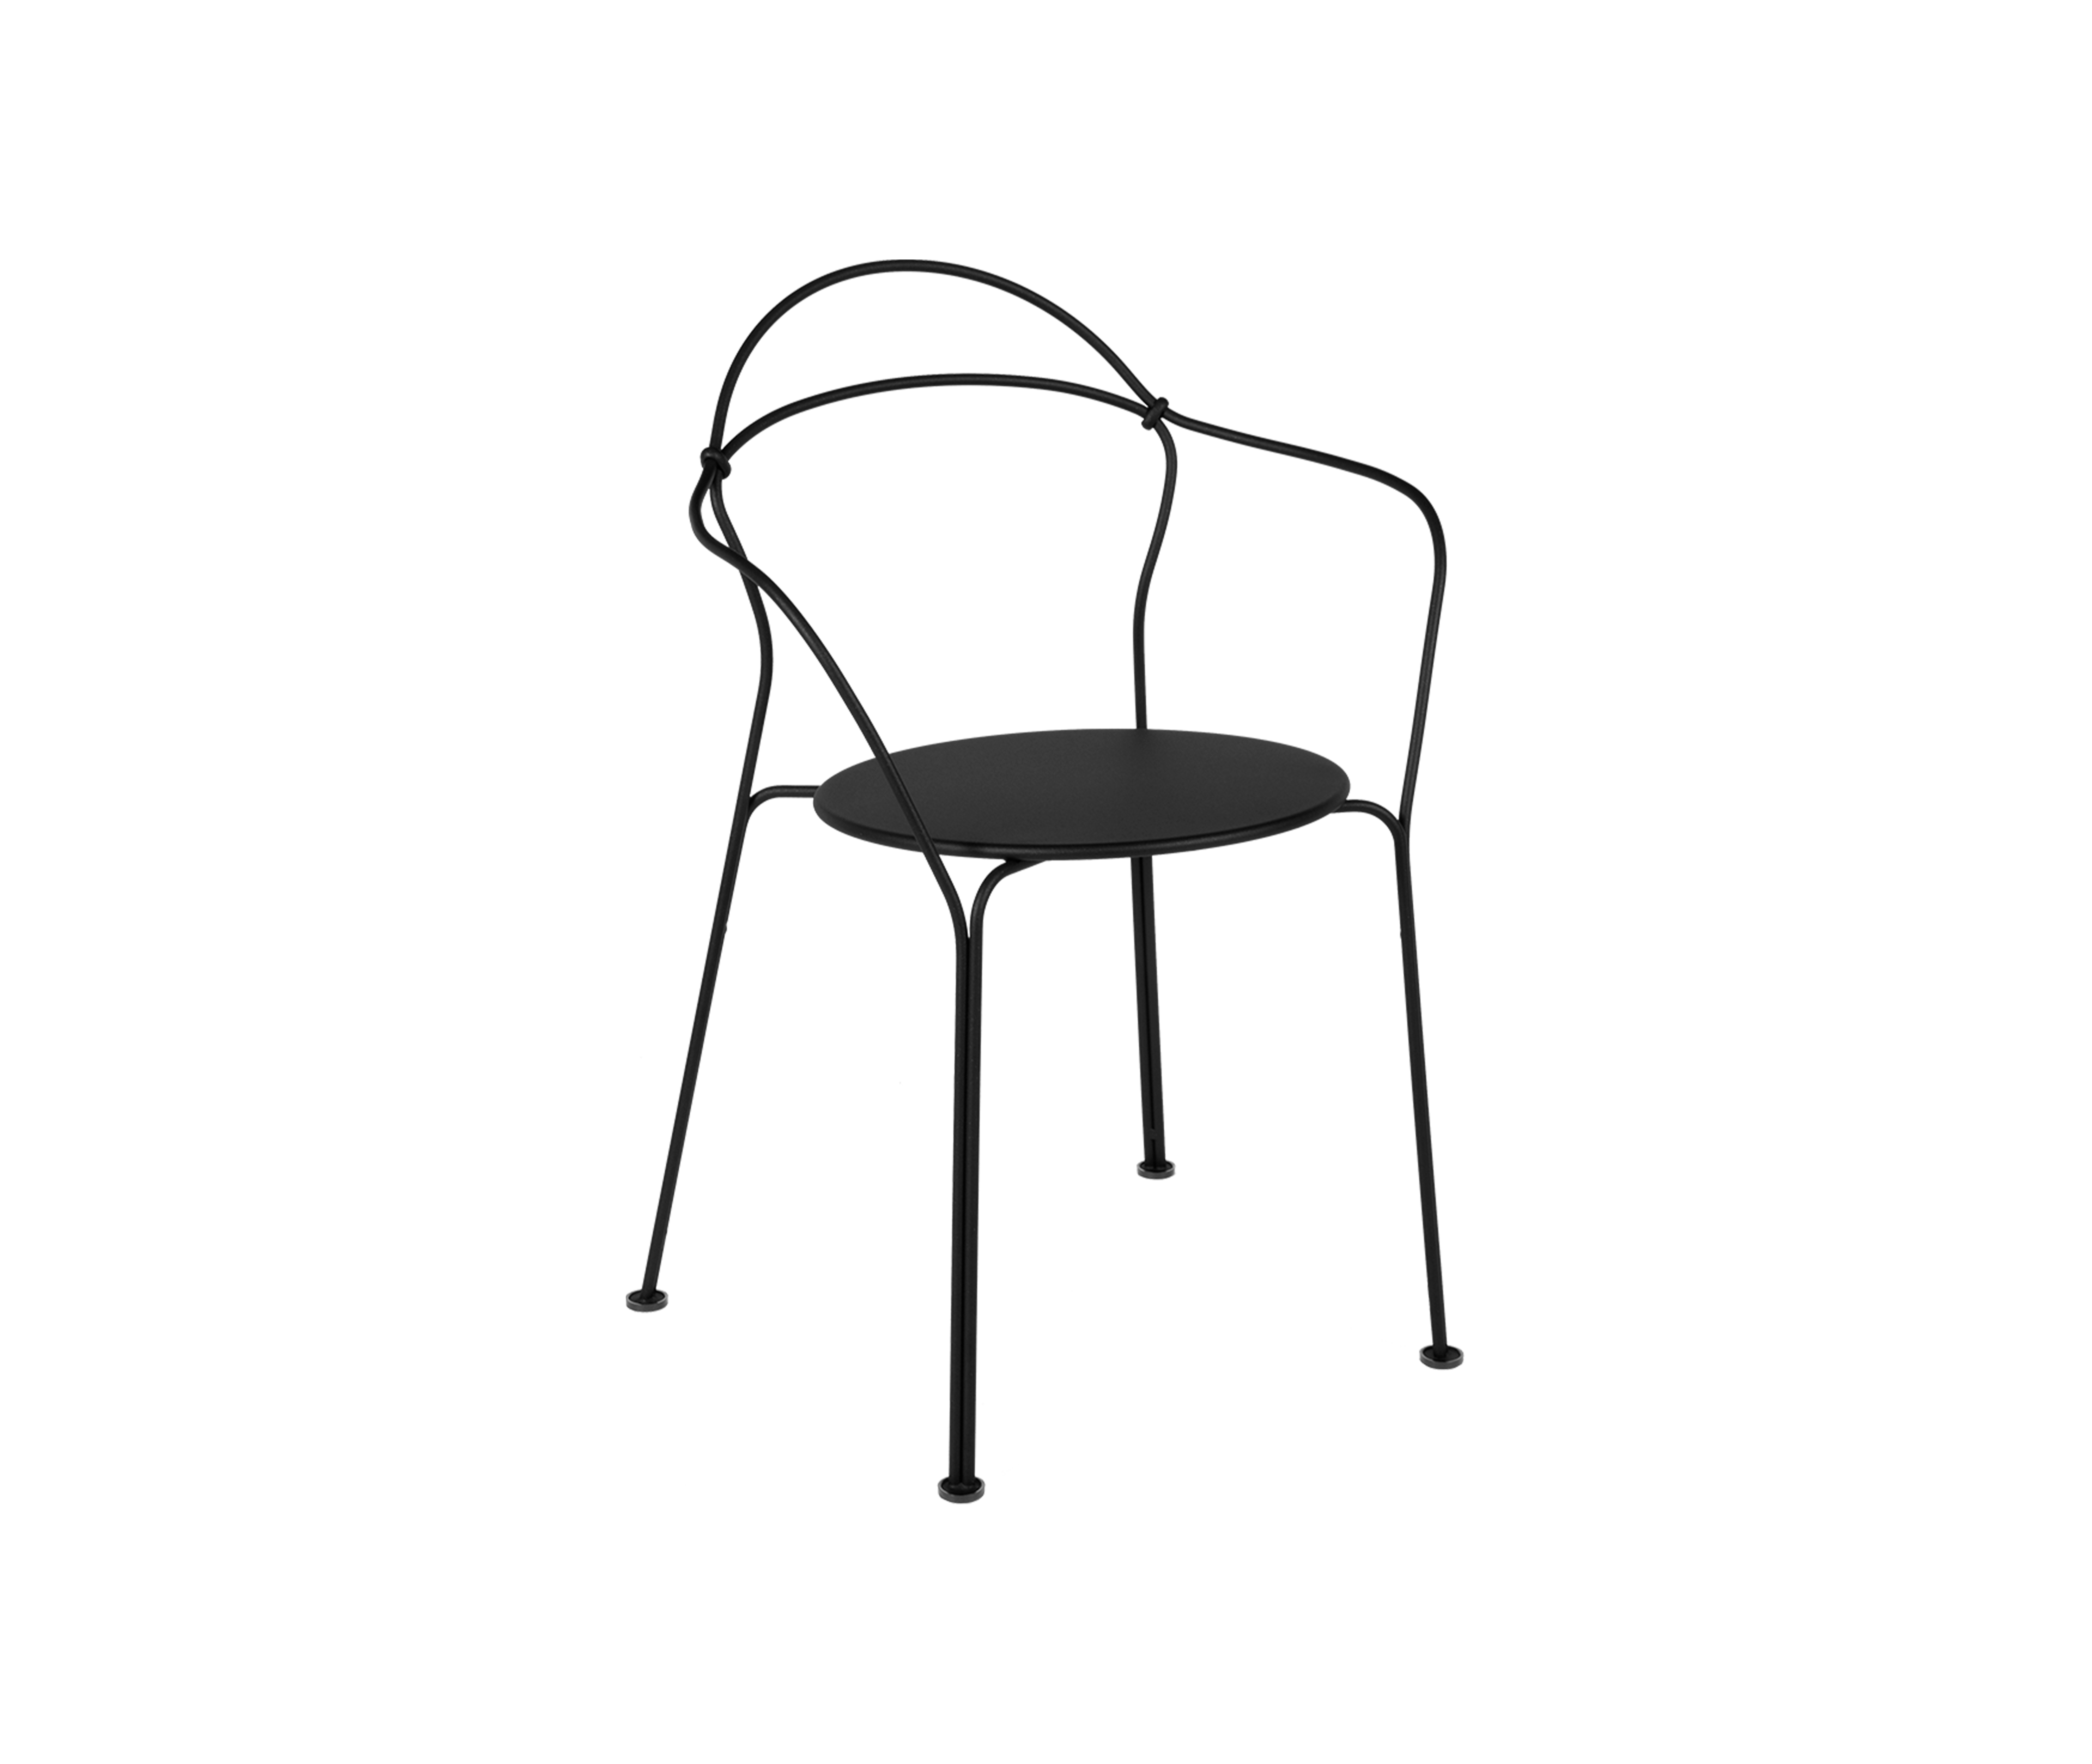 Fermob_Airloop Armchair_int_products